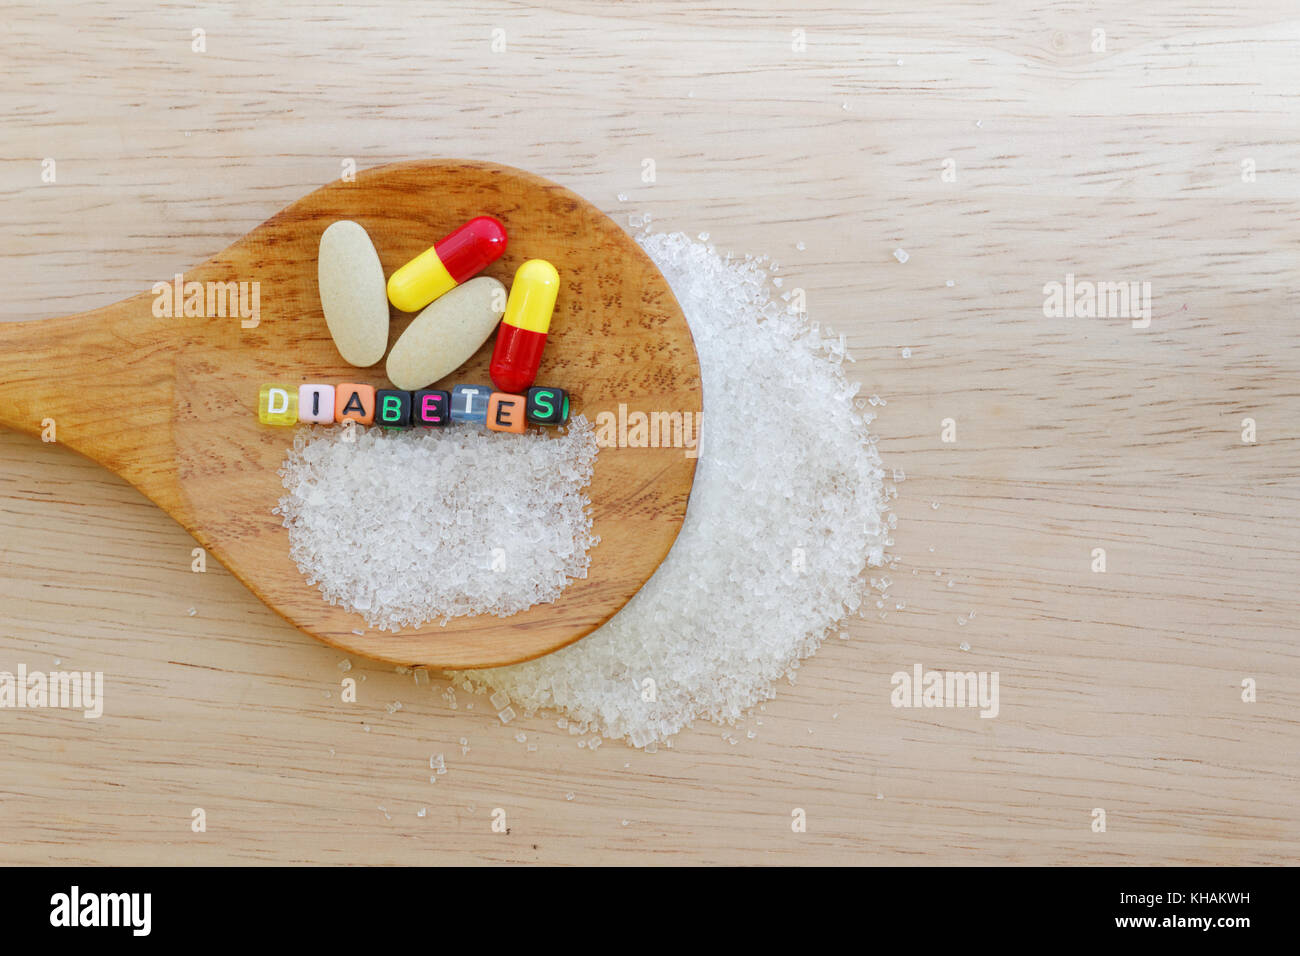 Medicine and the word Diabetes and sugar in spatula on wooden background - Stock Image